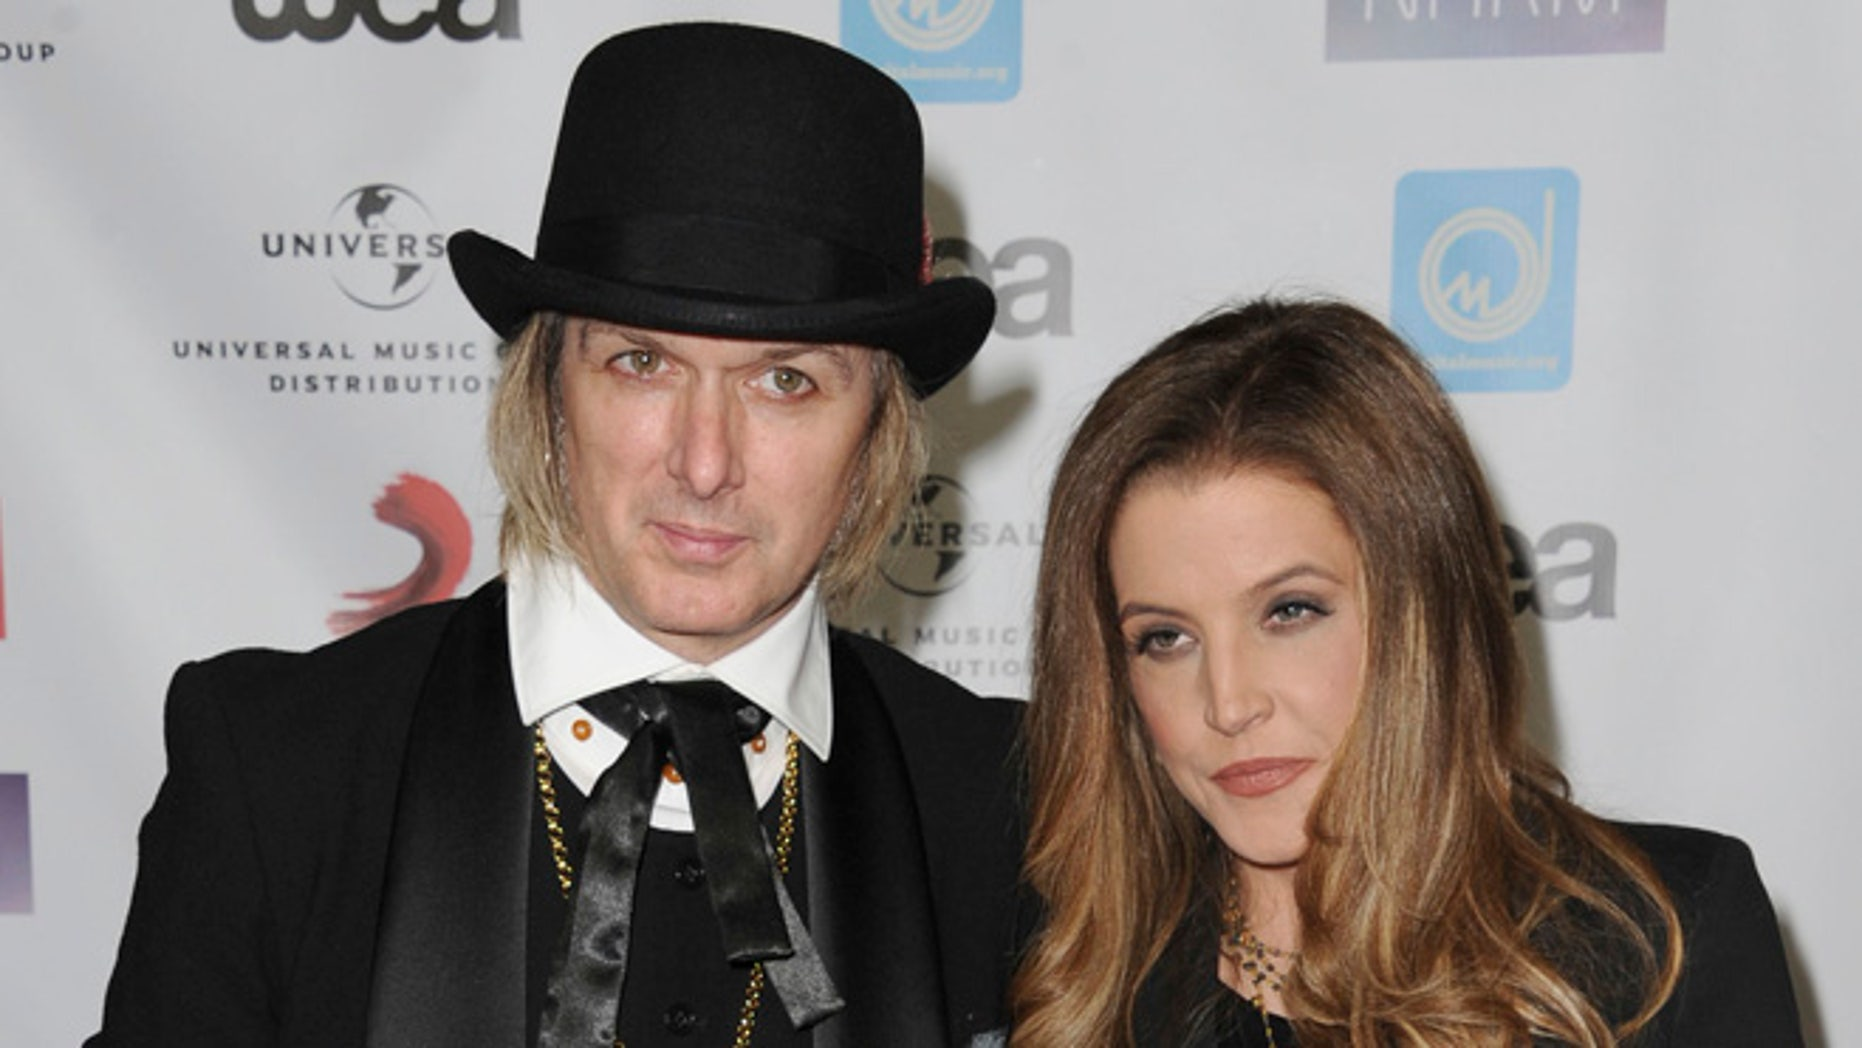 Lisa Marie Presley reportedly won't have to pay ex-husband, Michael Lockwood, spousal support, according to documents obtained by TMZ.